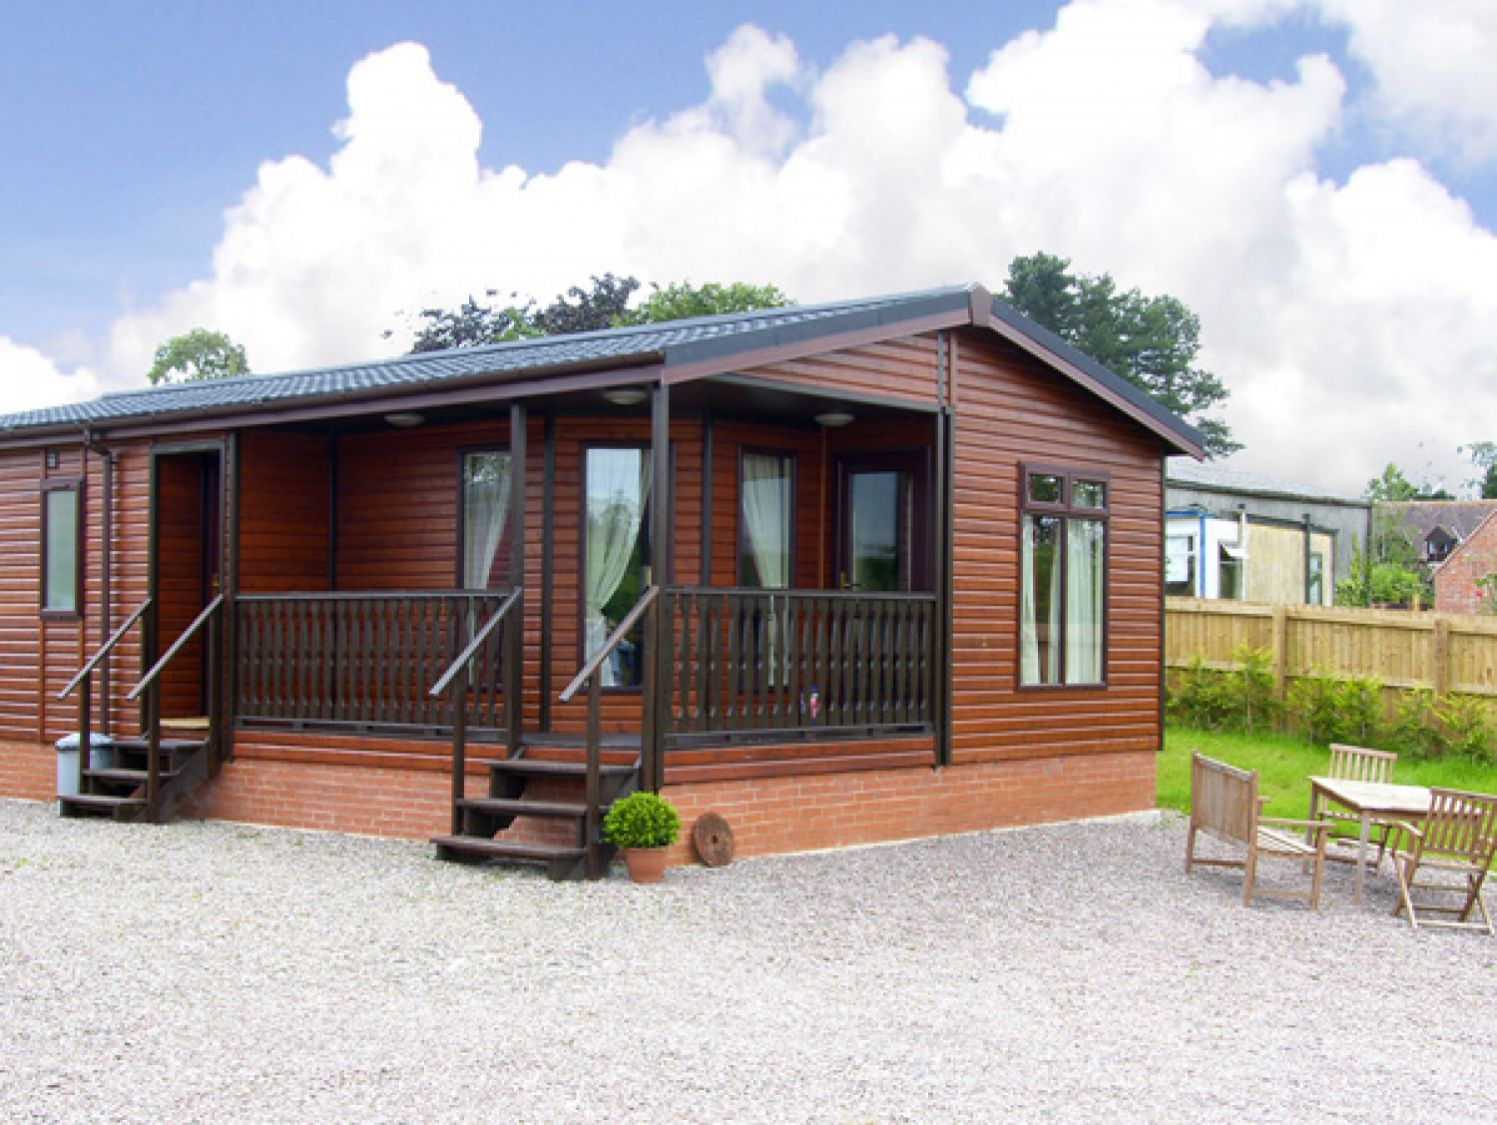 Rhubarb Lodge - Holiday Park in Bromyard, Herefordshire, England